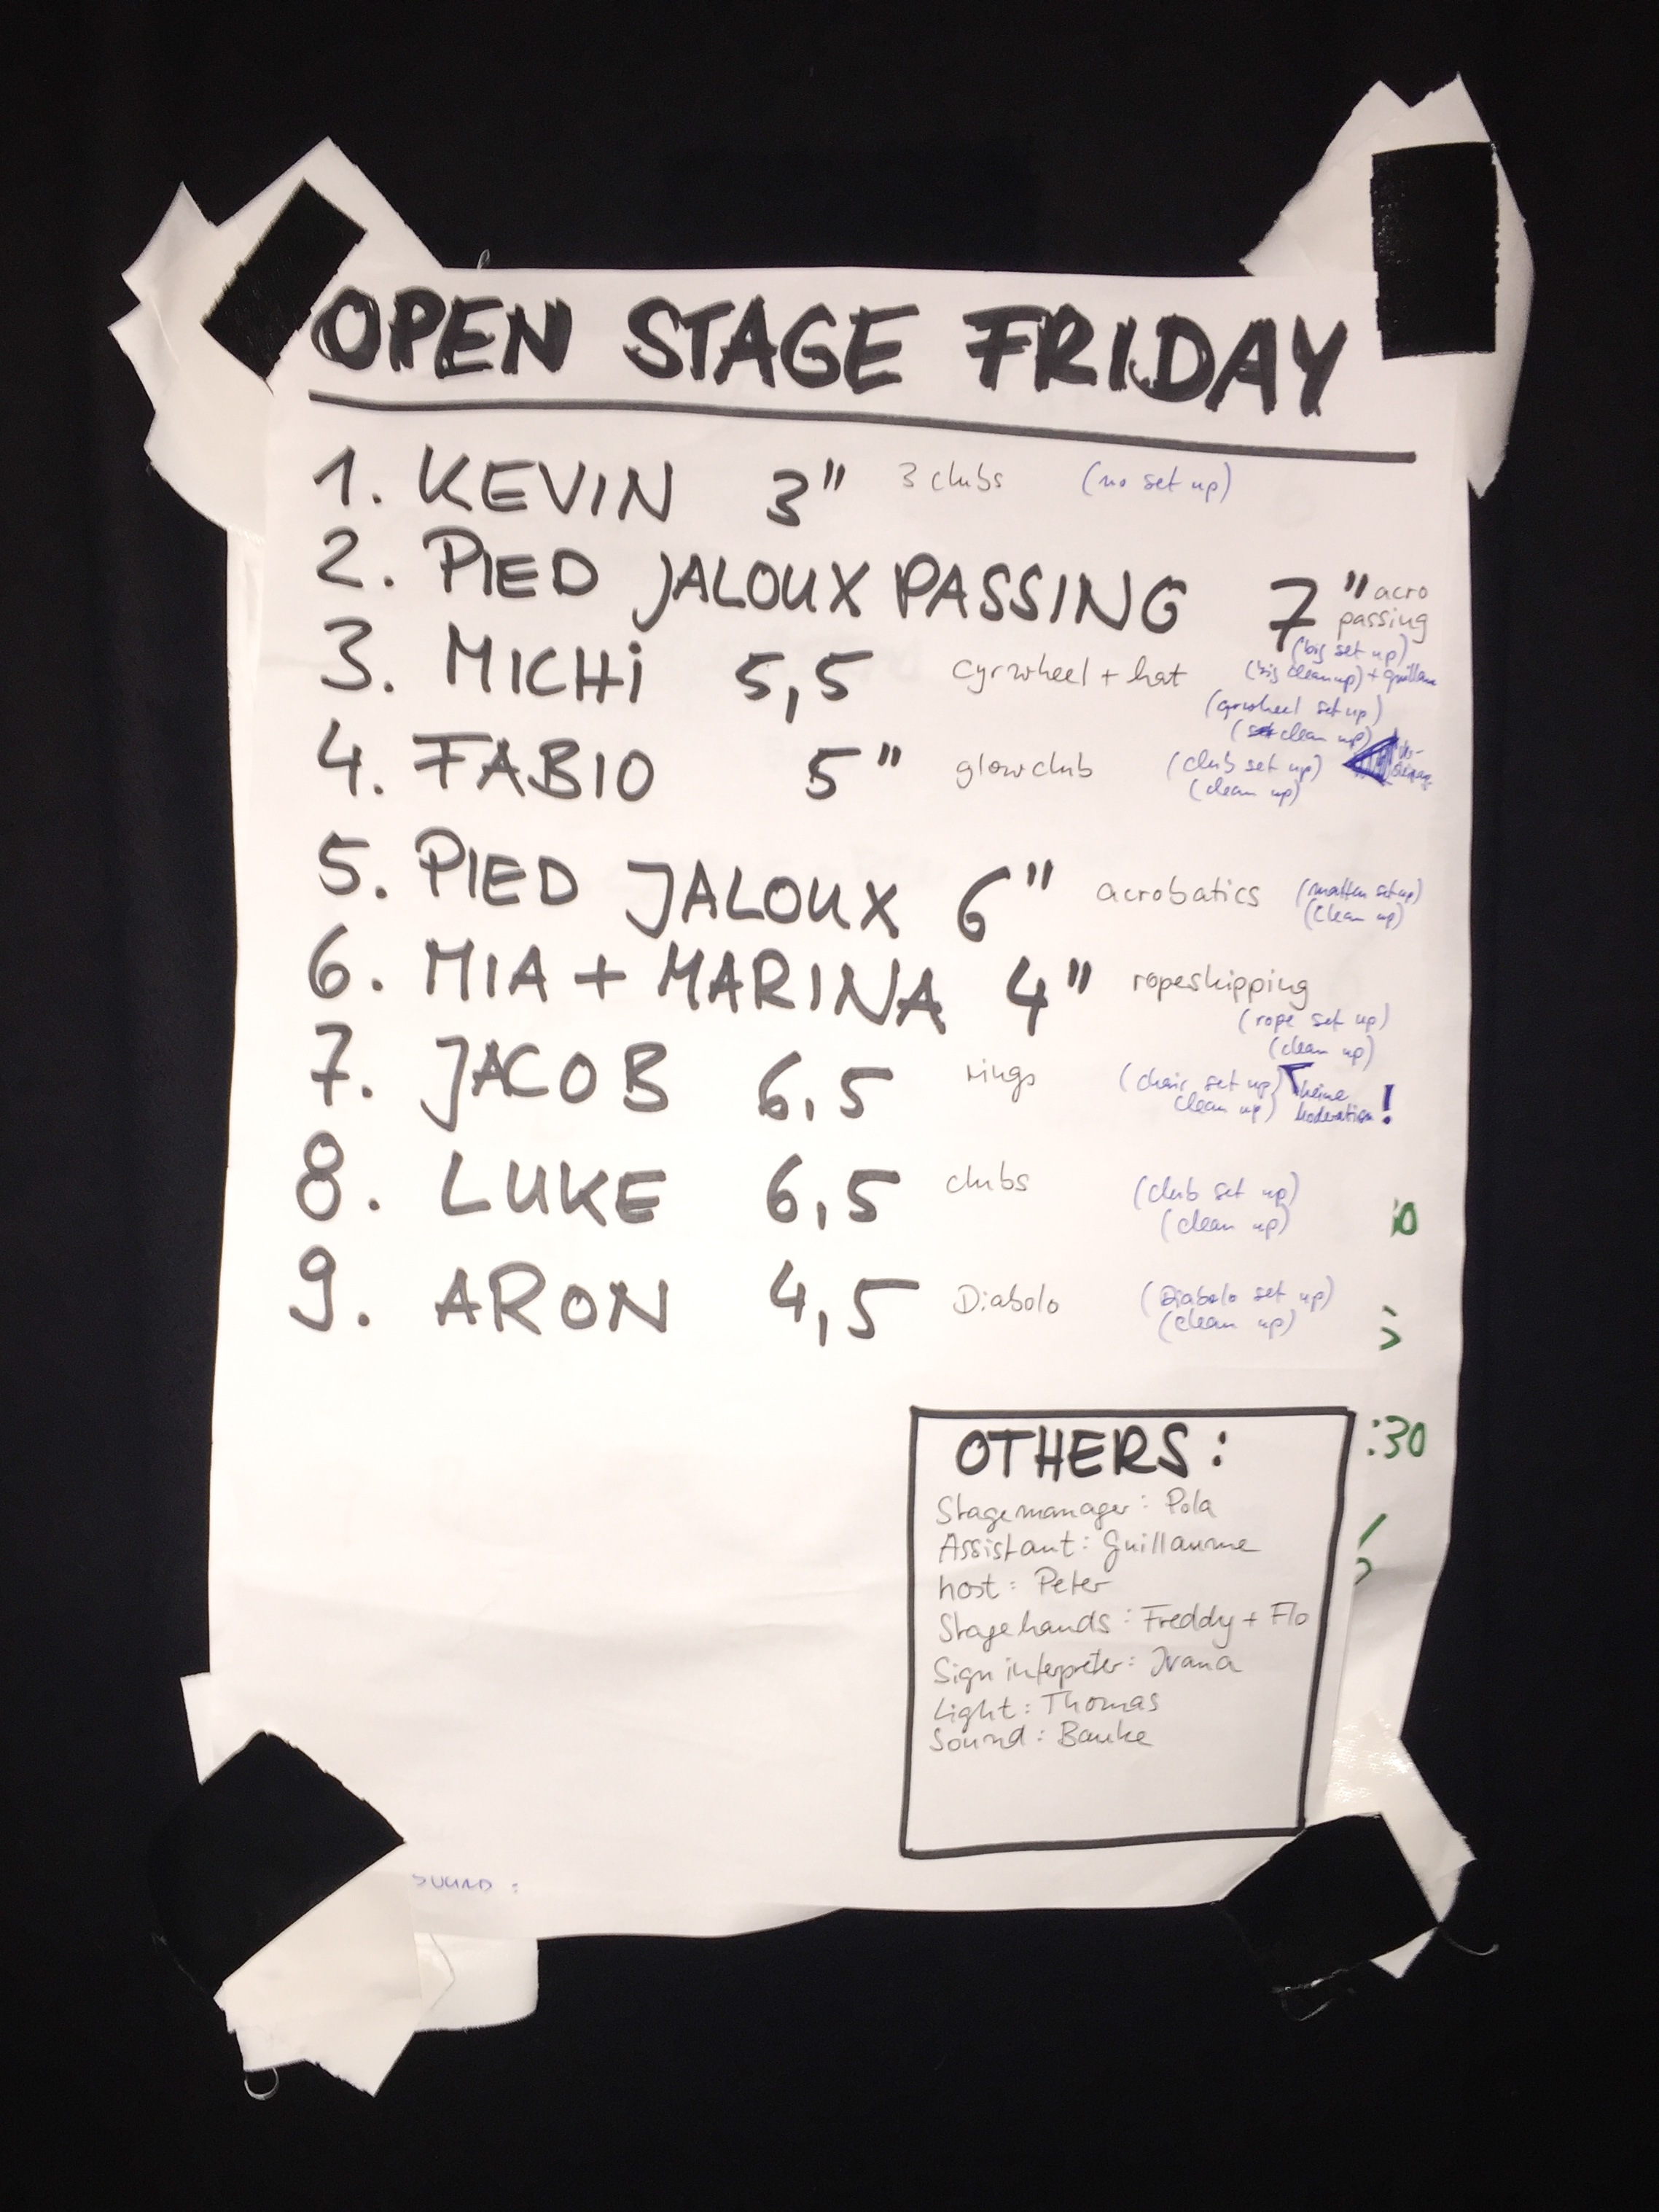 EJC 2016 Almere Days 6 and 7 - Diabolo Battle and Friday Open Stage: Friday Open Stage.